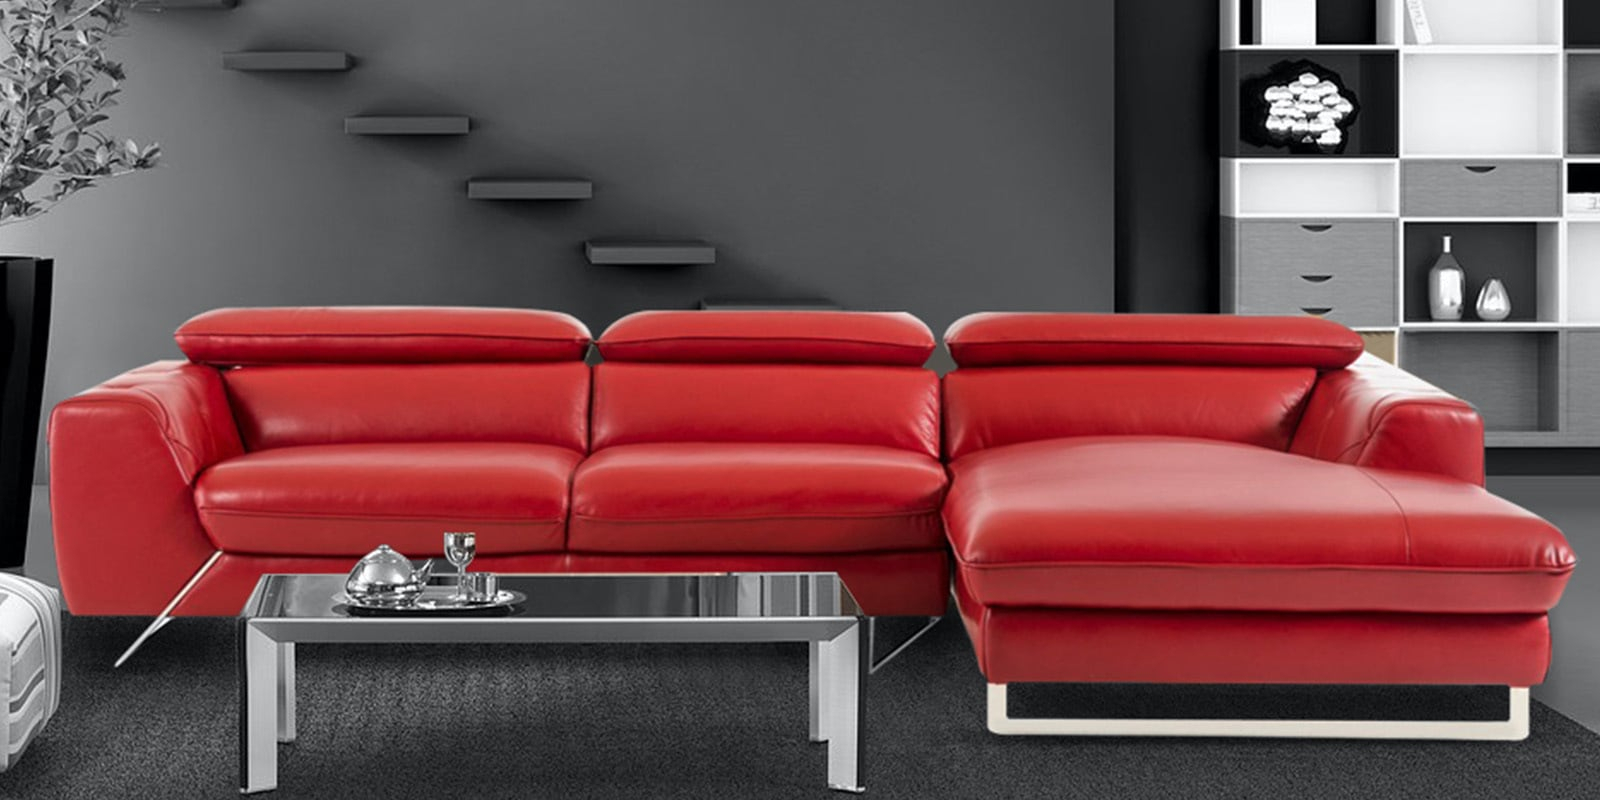 Buy Ultra Modern Lhs 2 Seater Sofa With Lounger In Red Regarding Contemporary Sofas And Chairs (View 2 of 15)